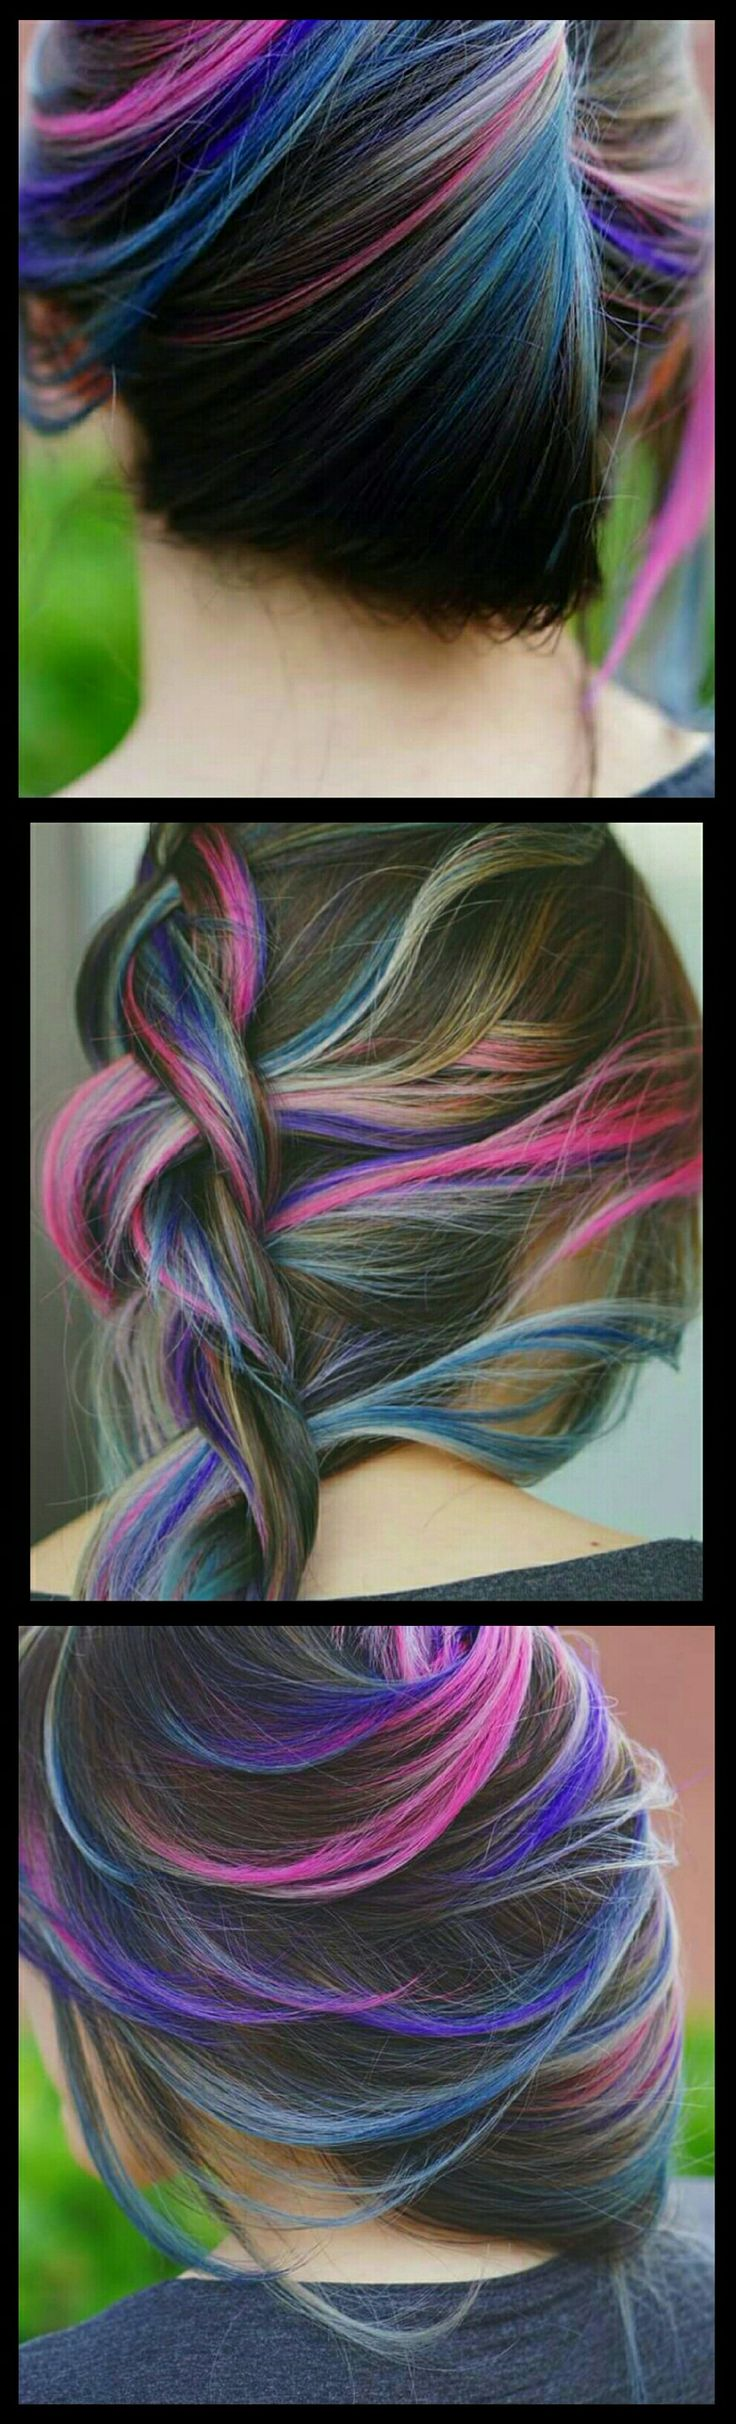 Pink blue streak dyed hair inspiration @alix_maya                                                                                                                                                                                 More